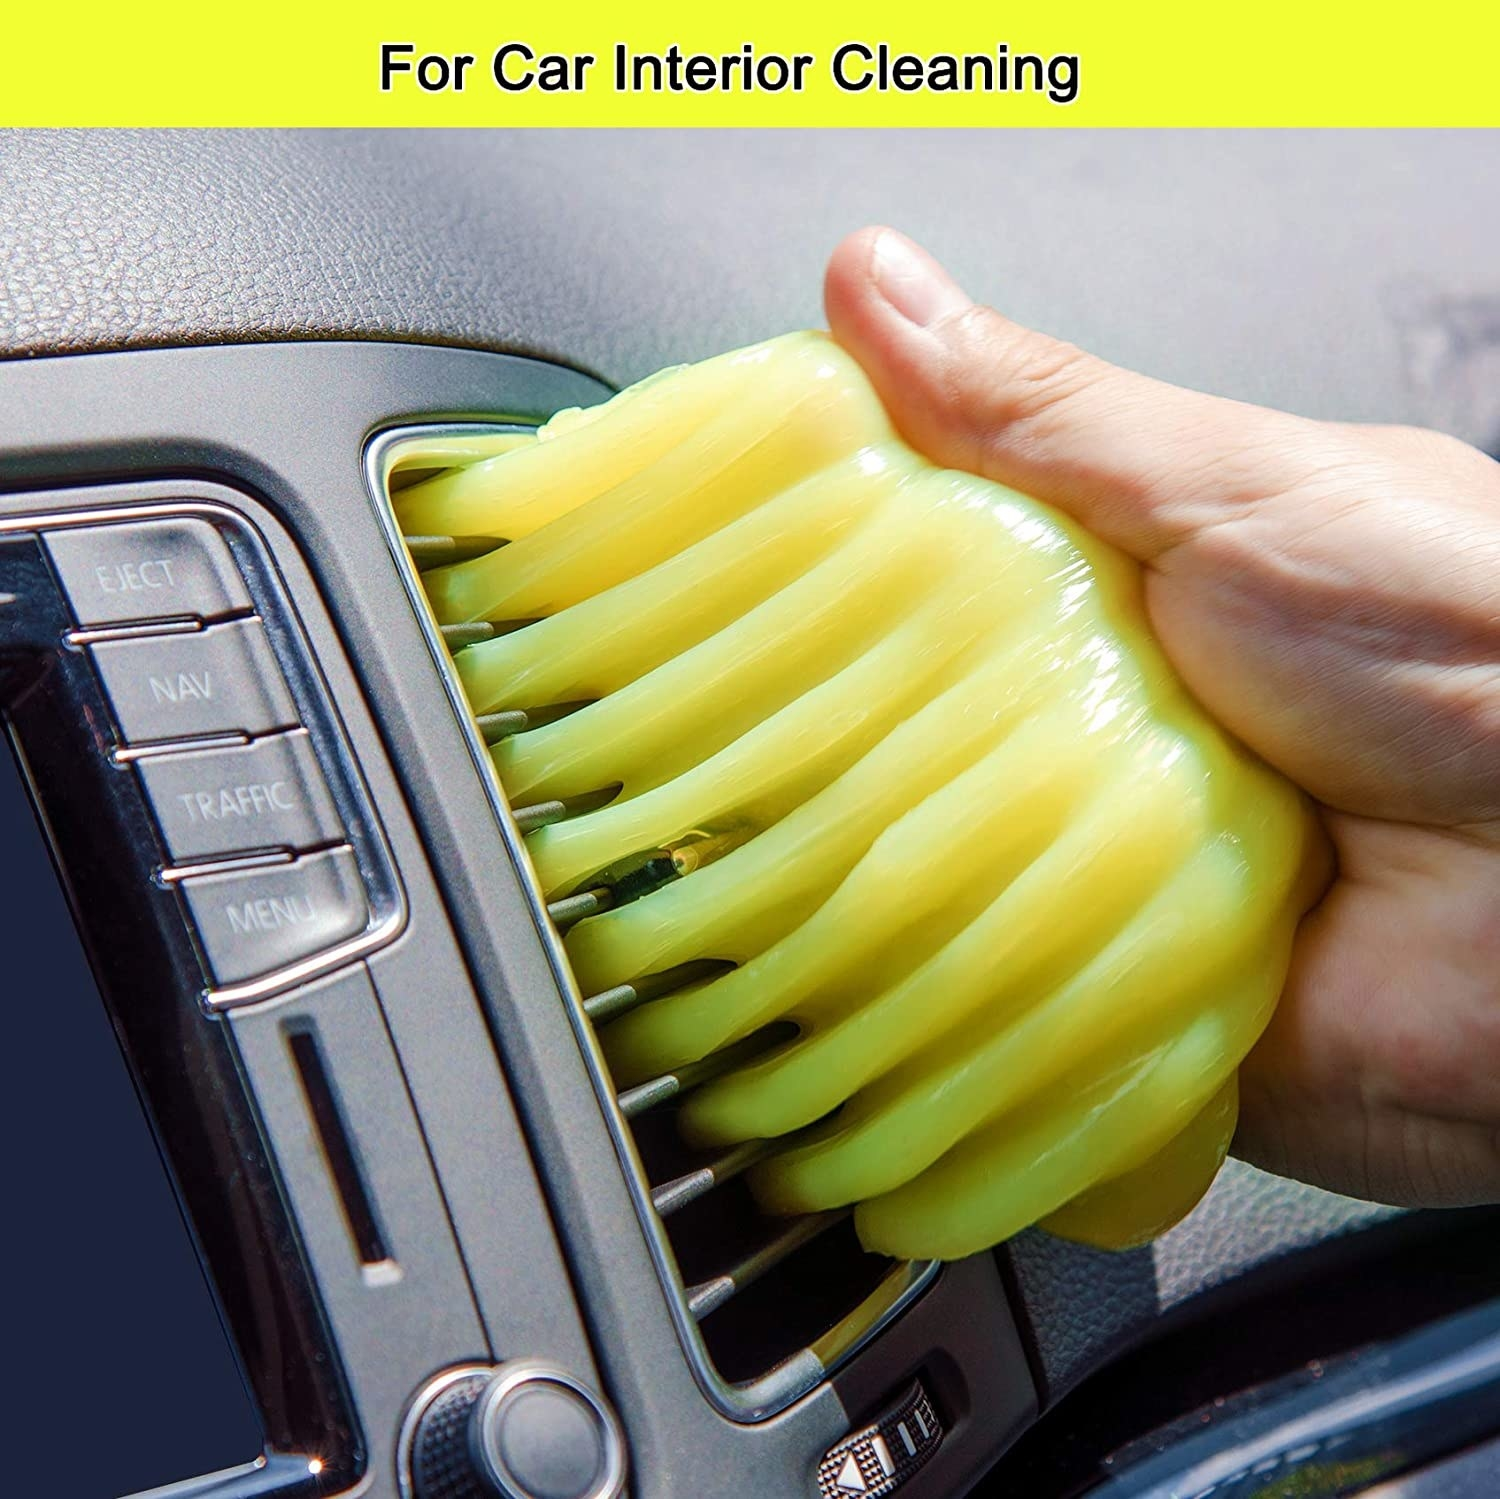 Hand pressing the cleaning gel into a car's AC vent